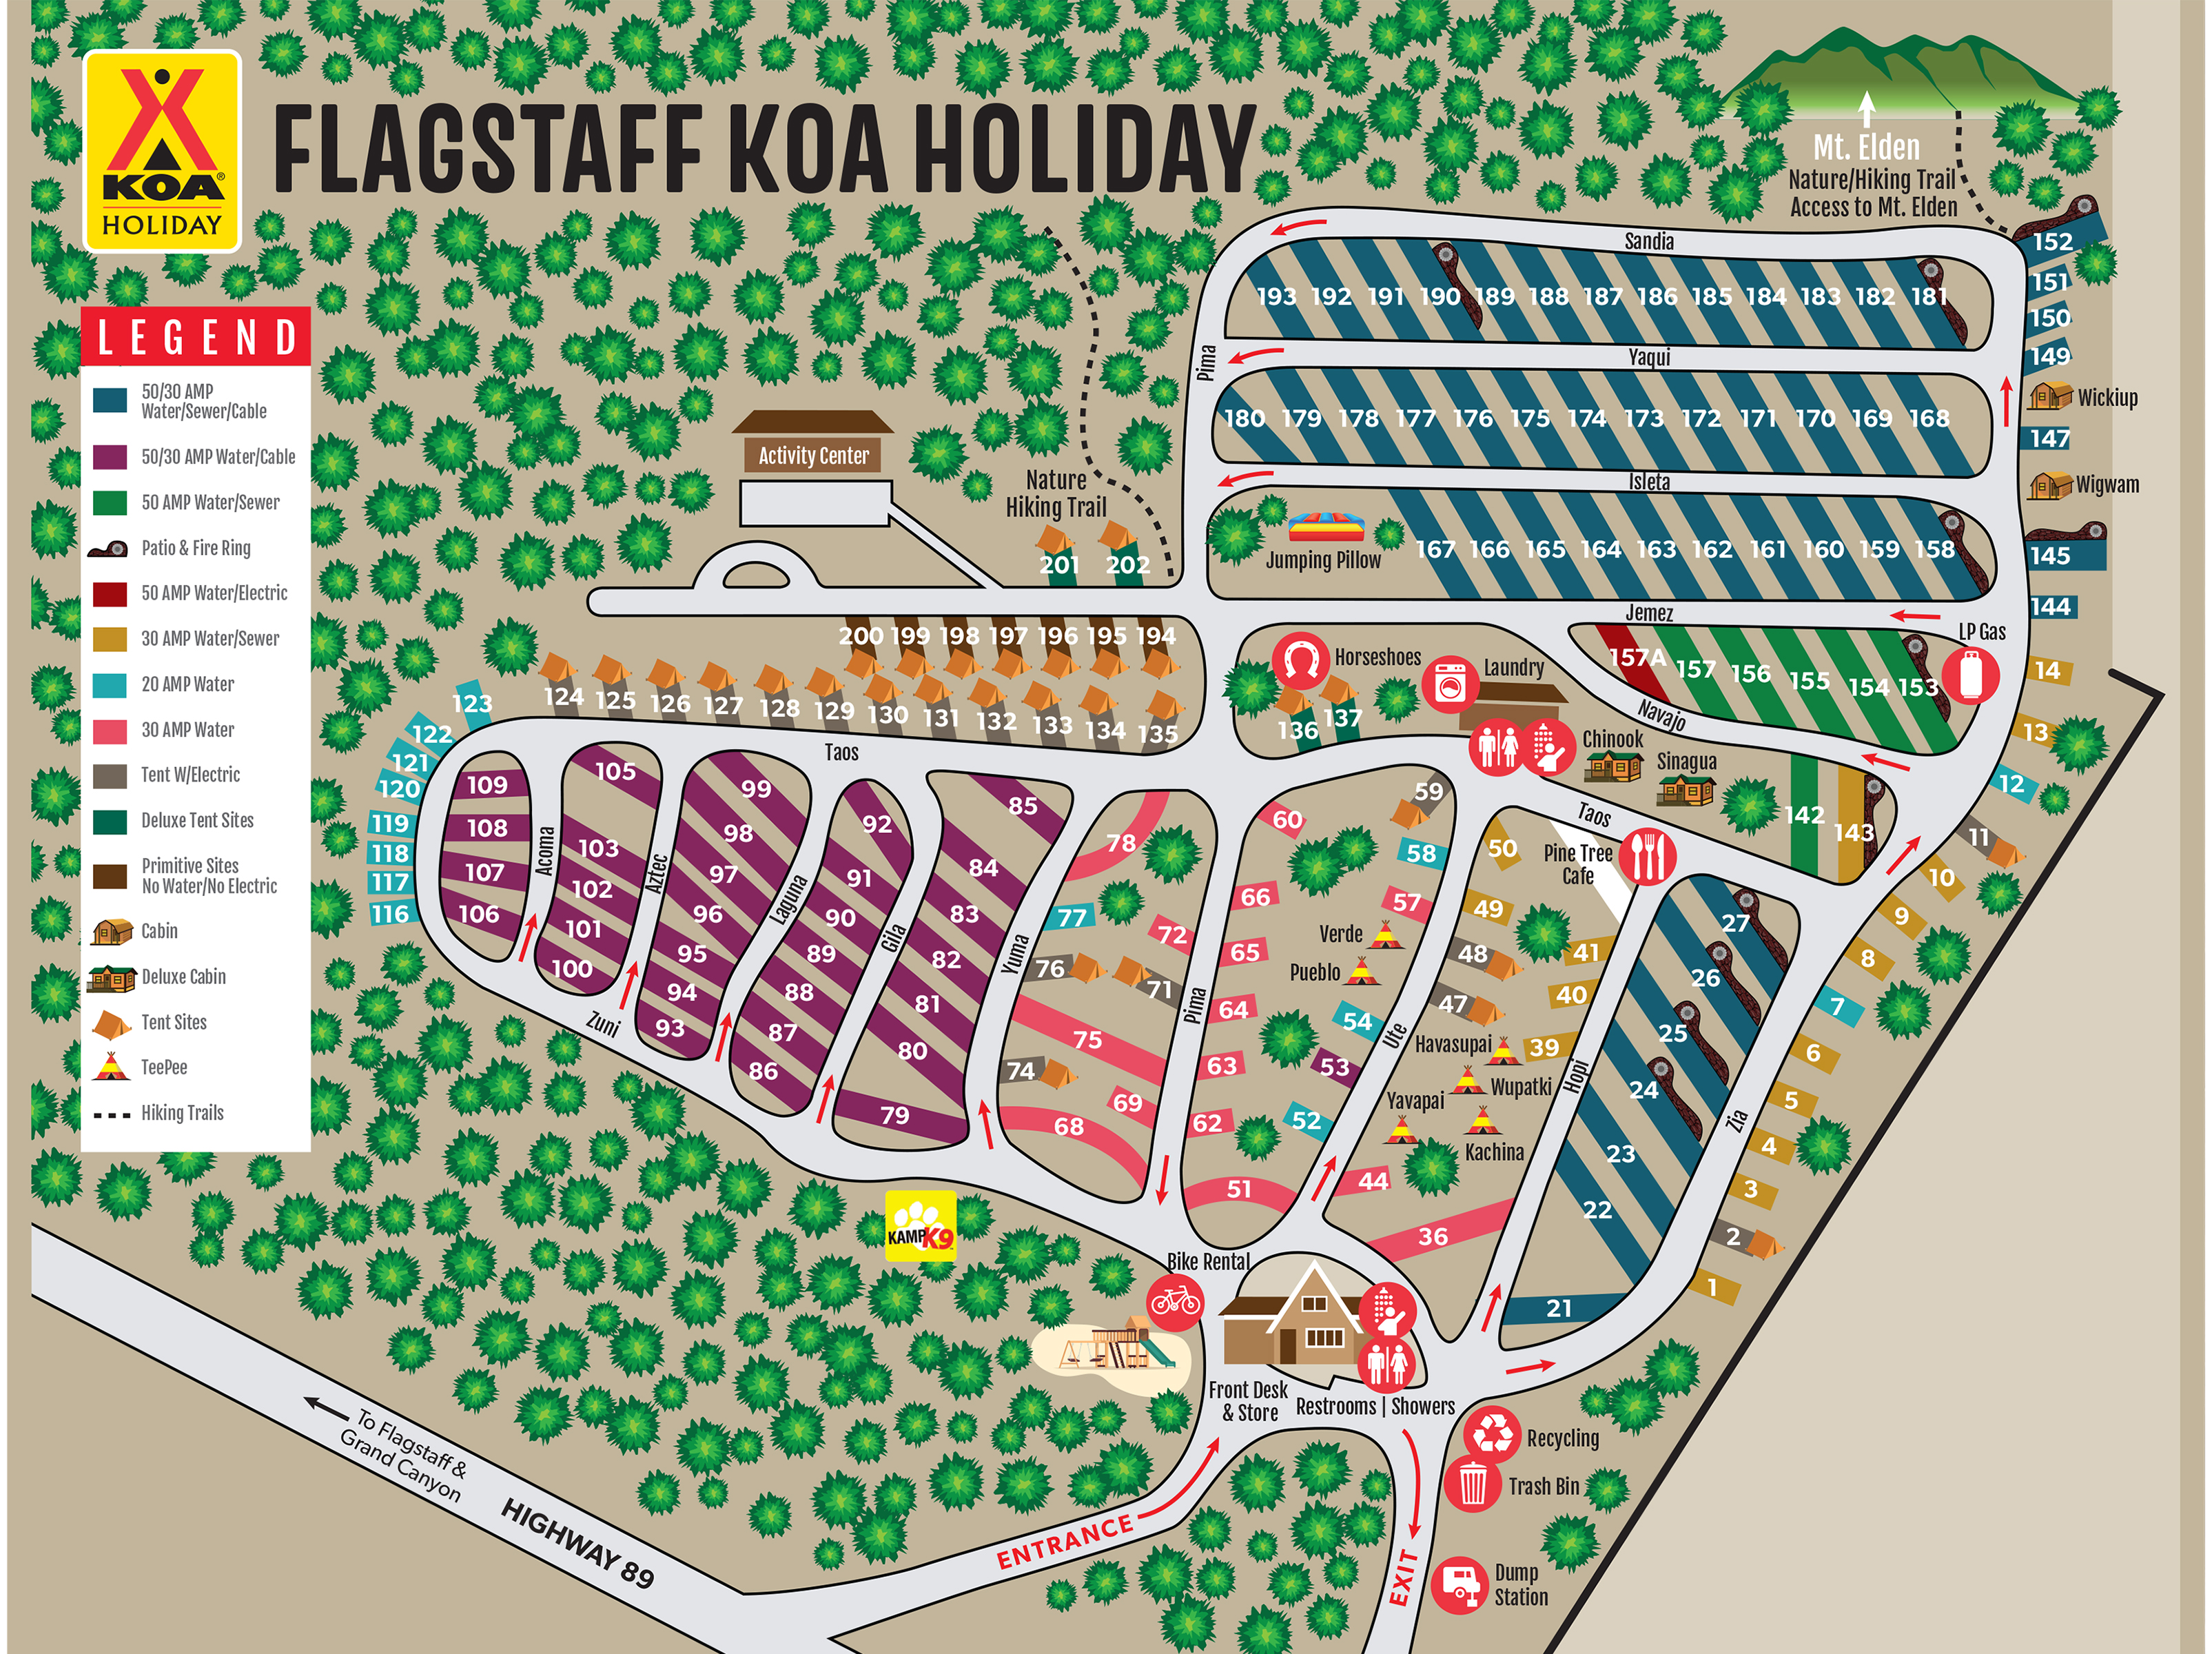 us map of koa campgrounds Flagstaff Arizona Campground Map Flagstaff Koa